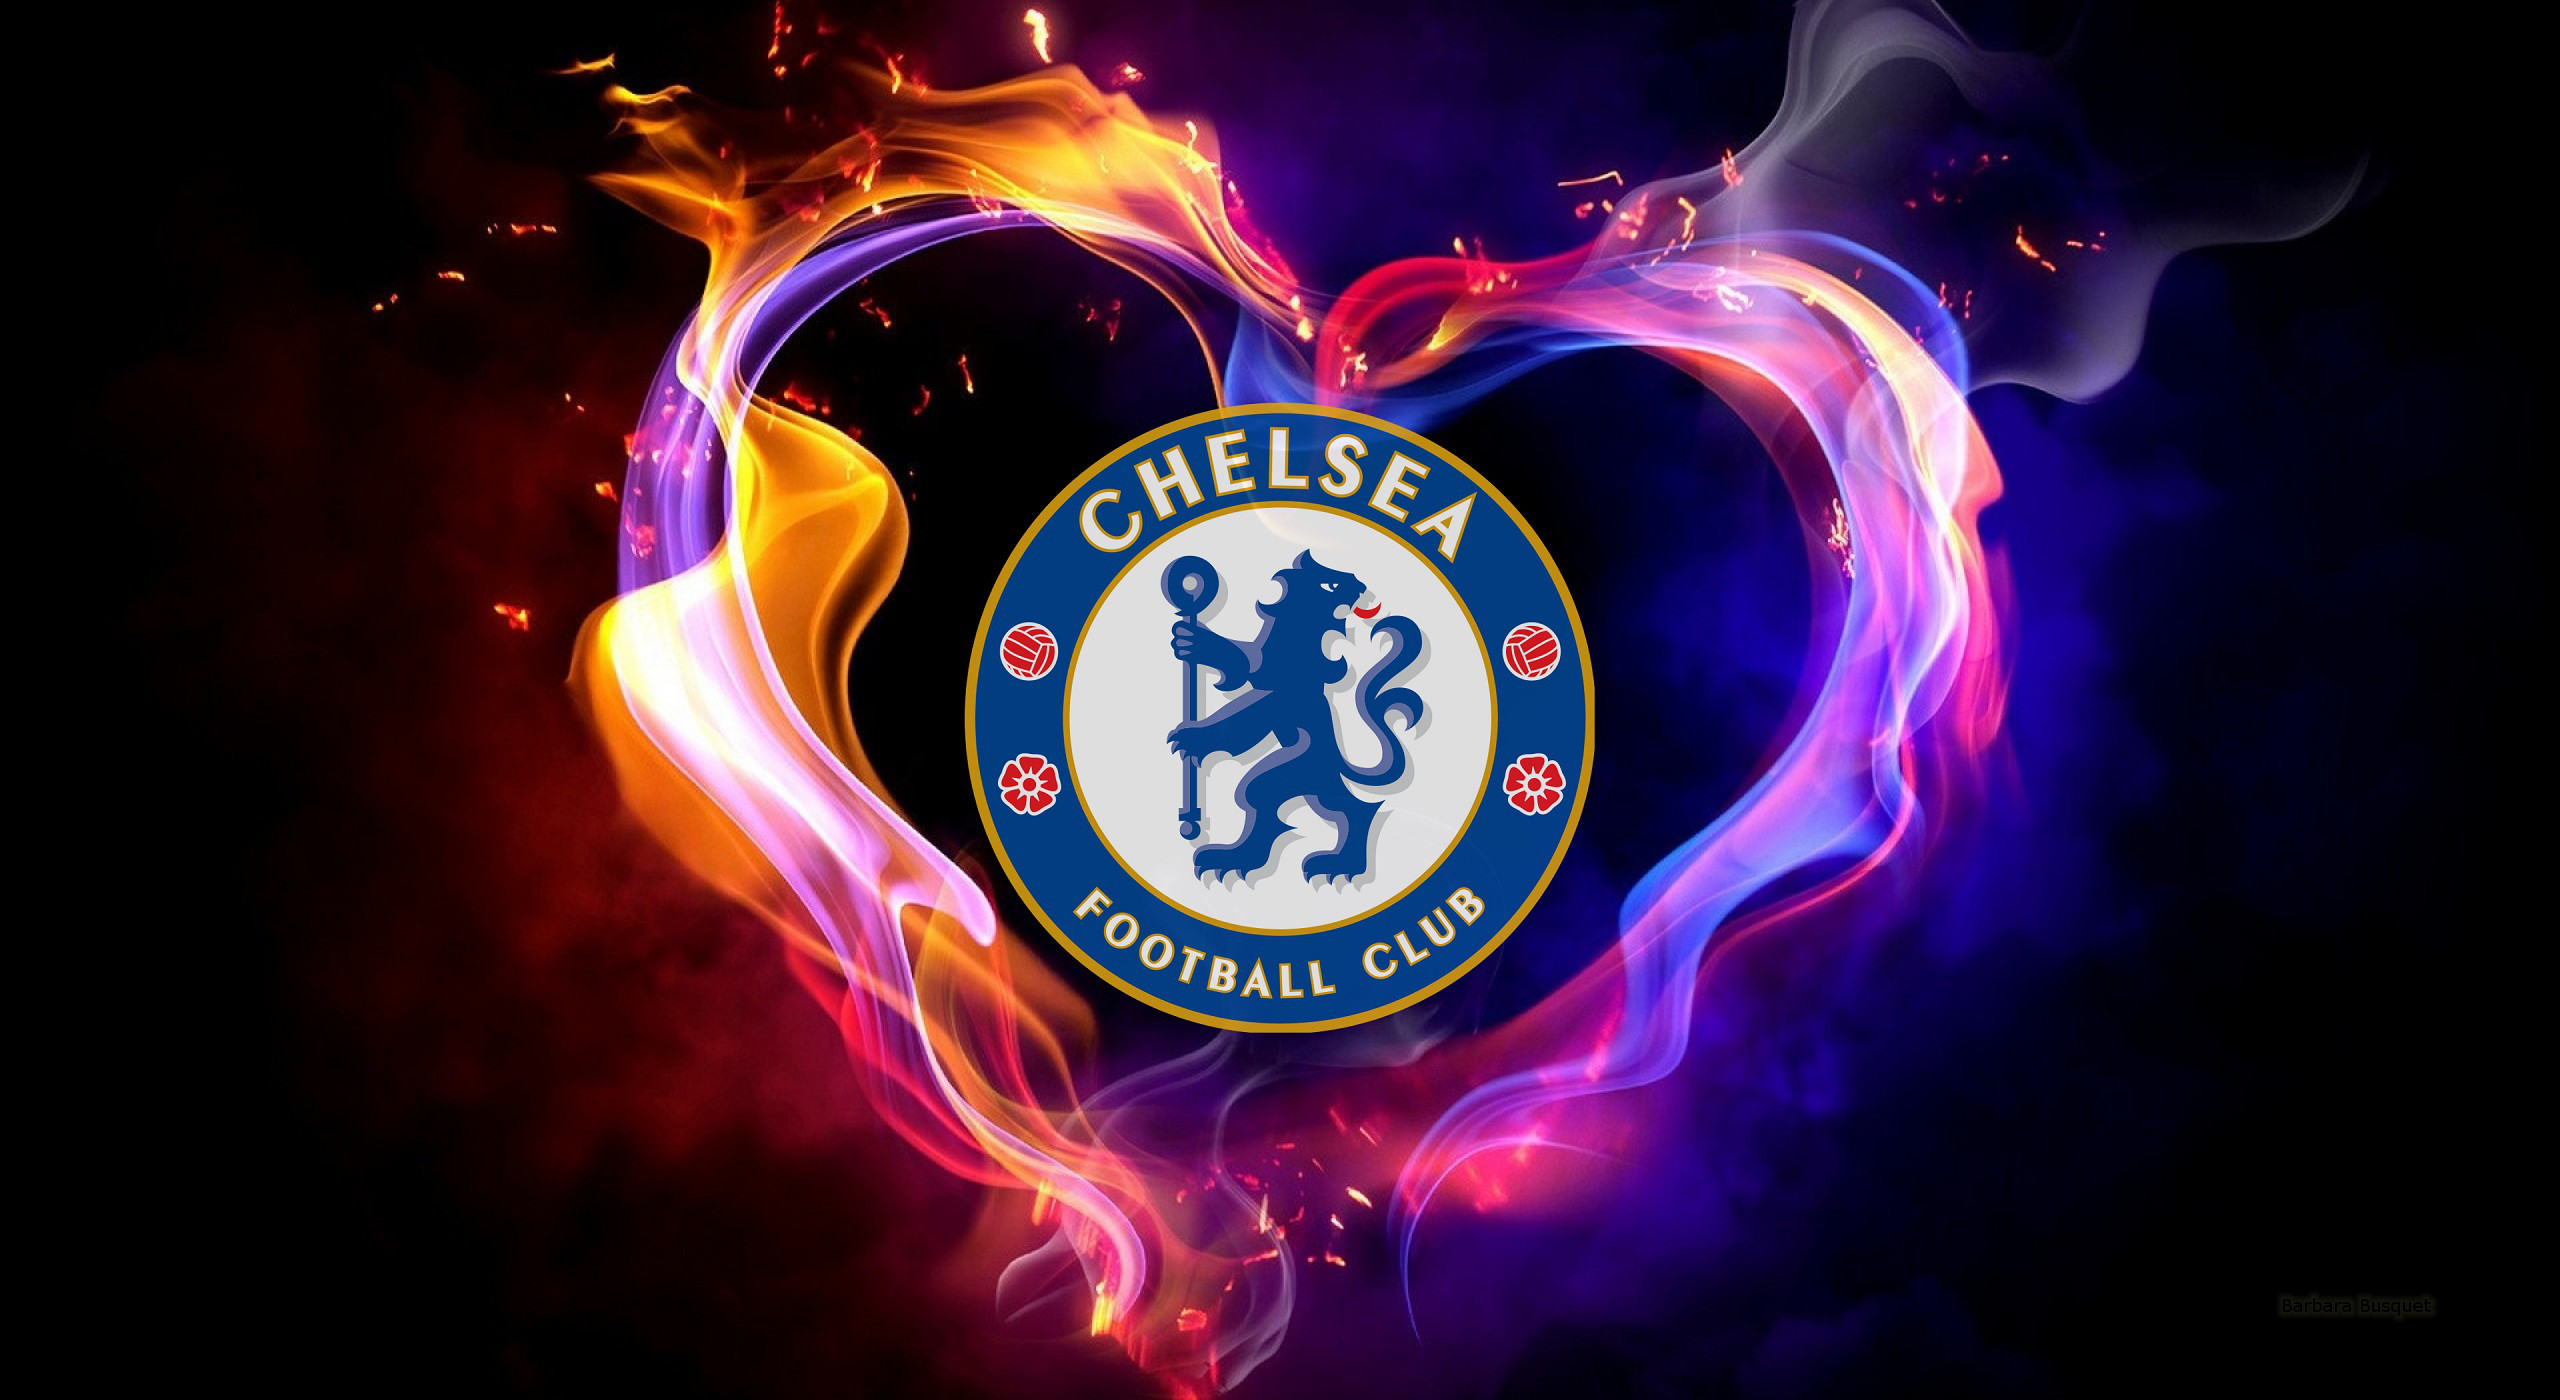 Chelsea Football Club Barbaras HD Wallpapers